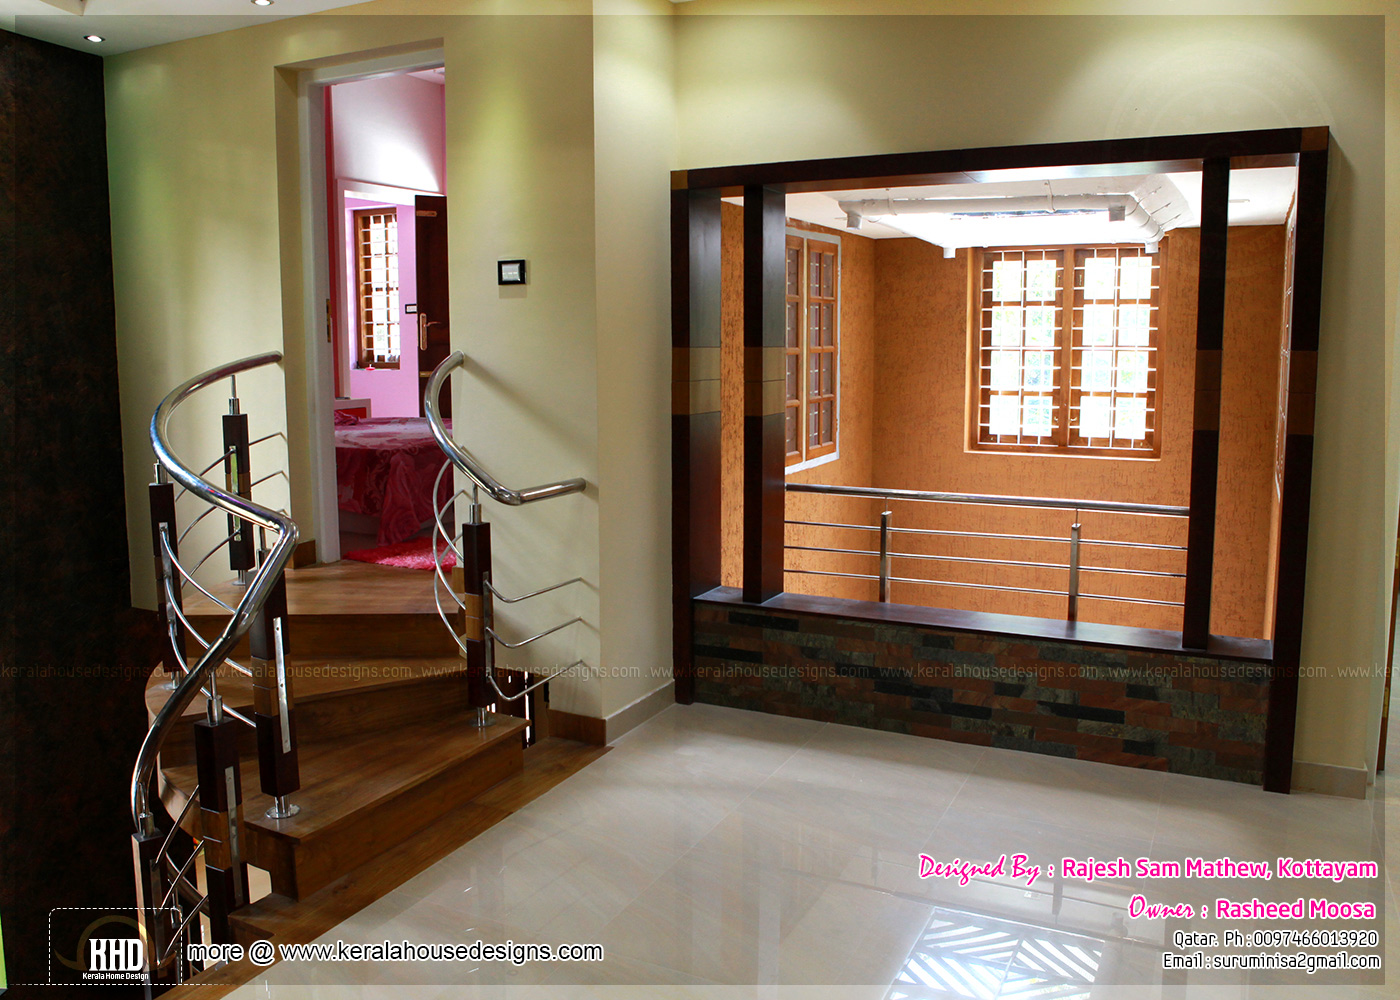 Kerala interior design with photos kerala home design for Home plans with interior photos